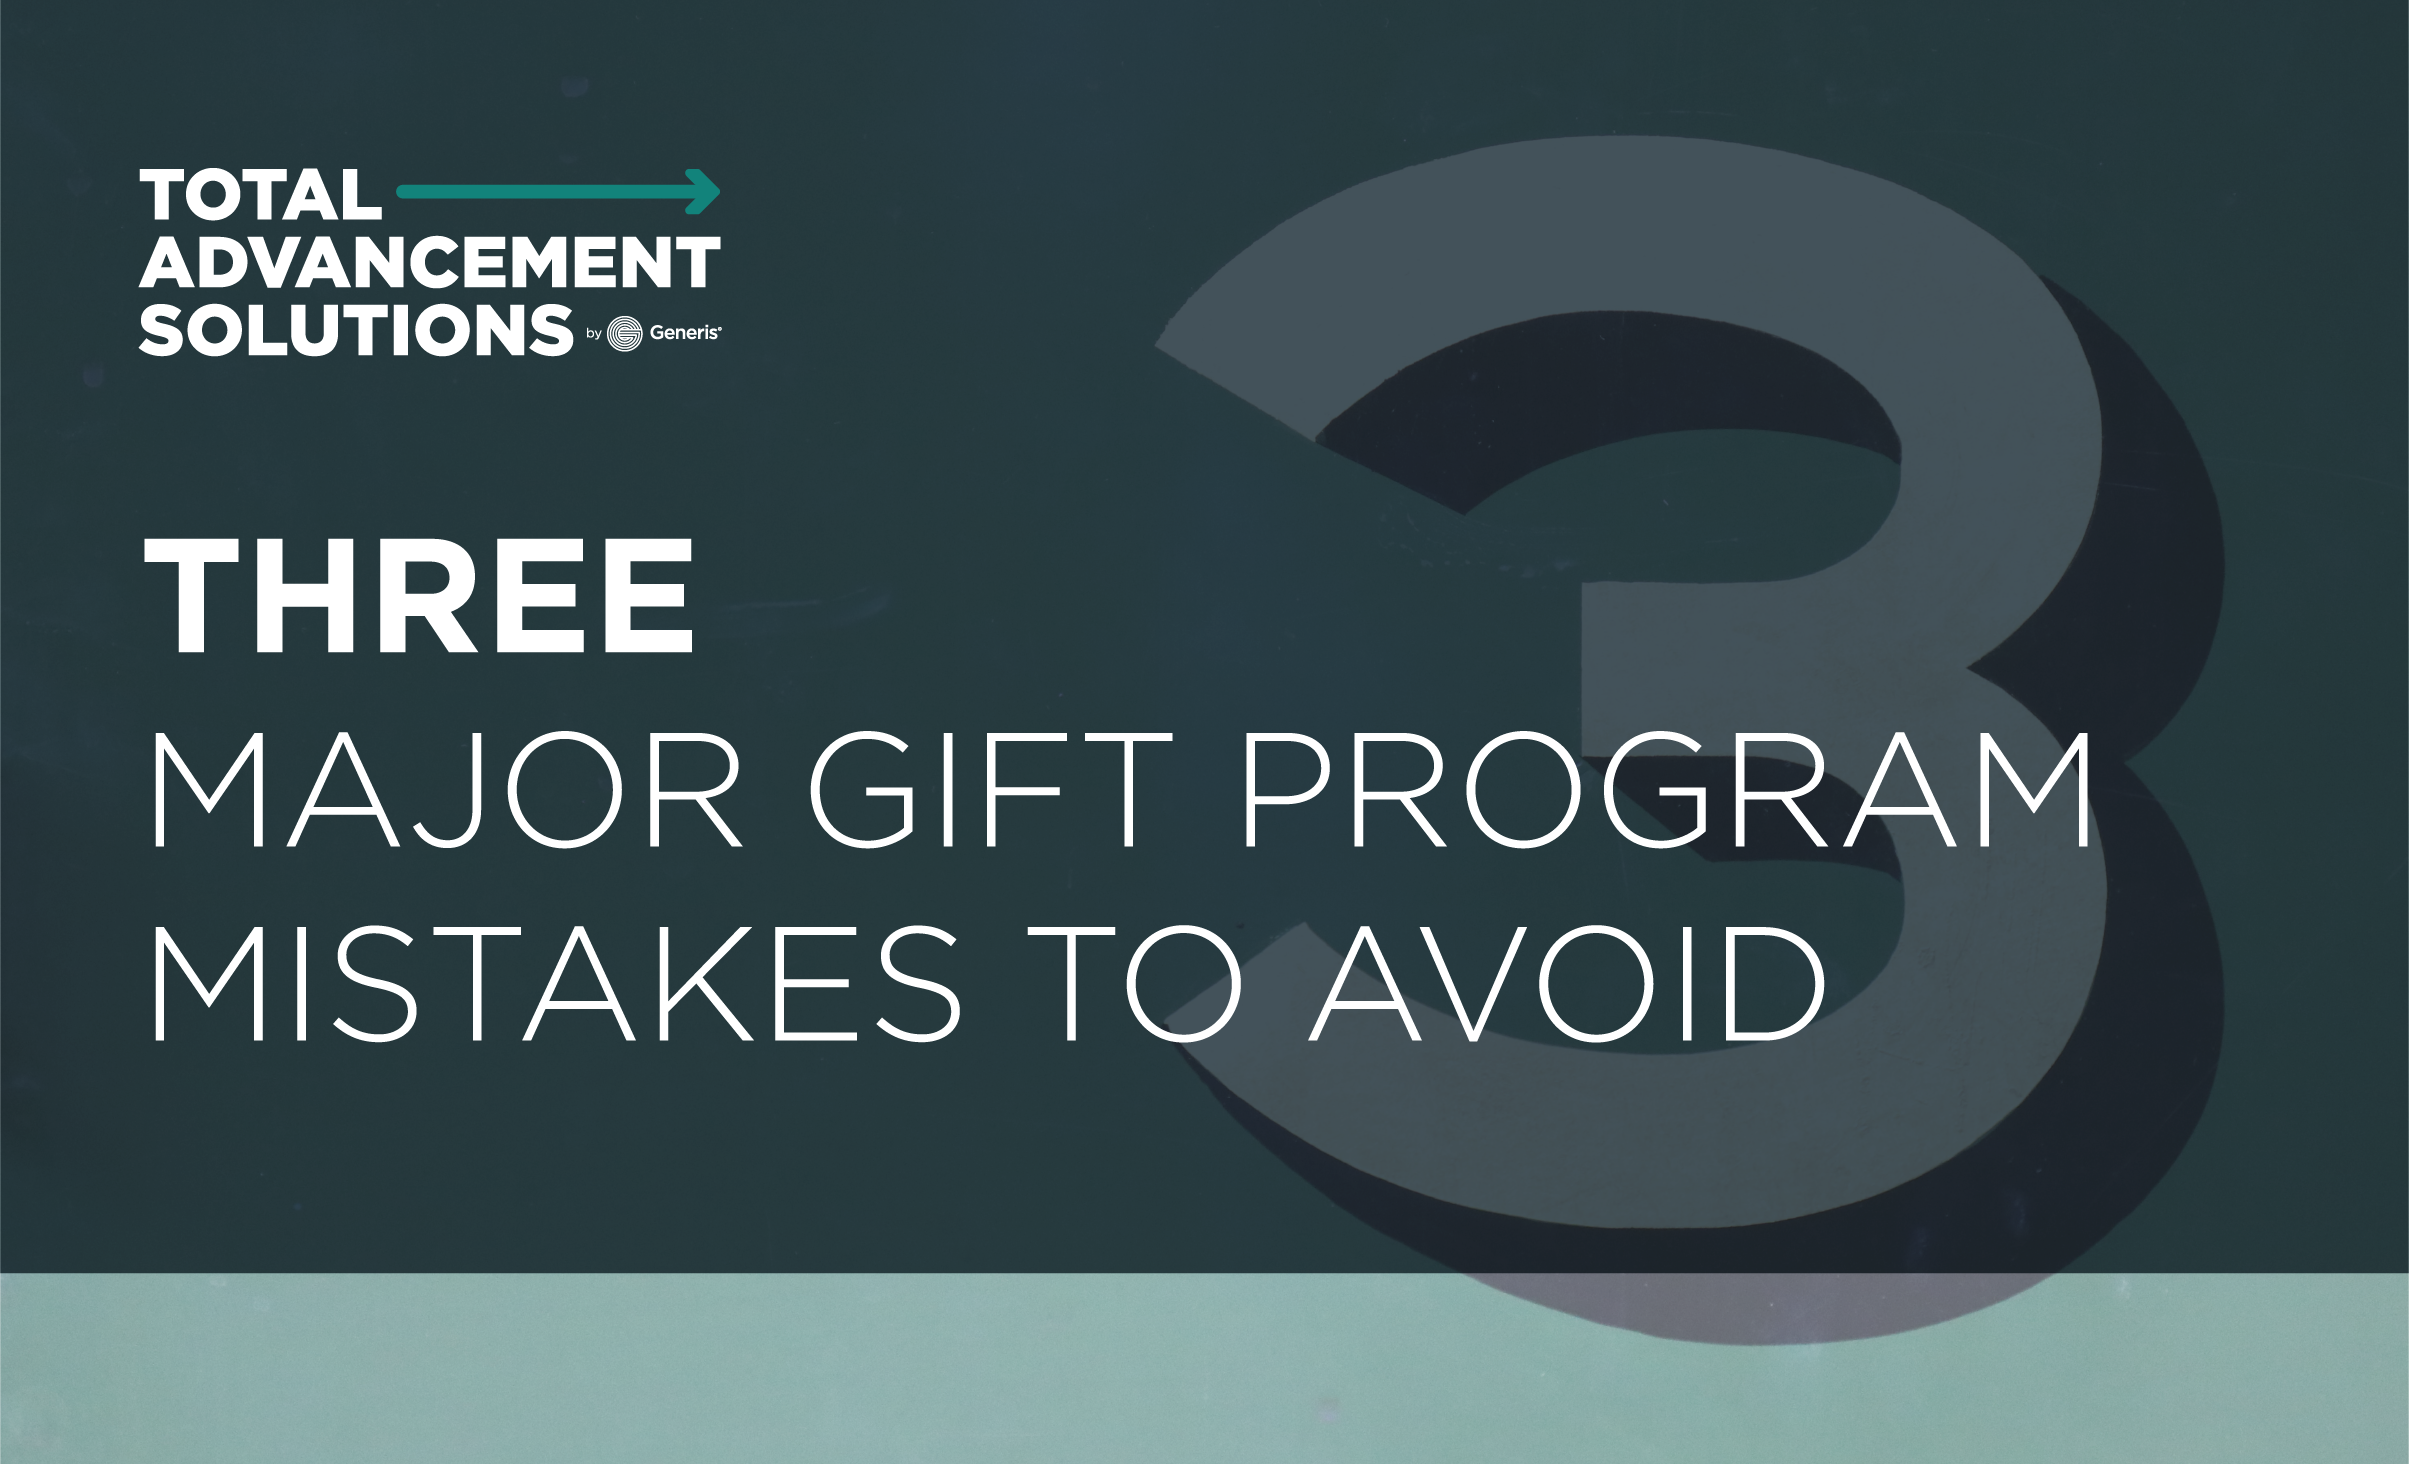 Three Major Gift Program Mistakes To Avoid